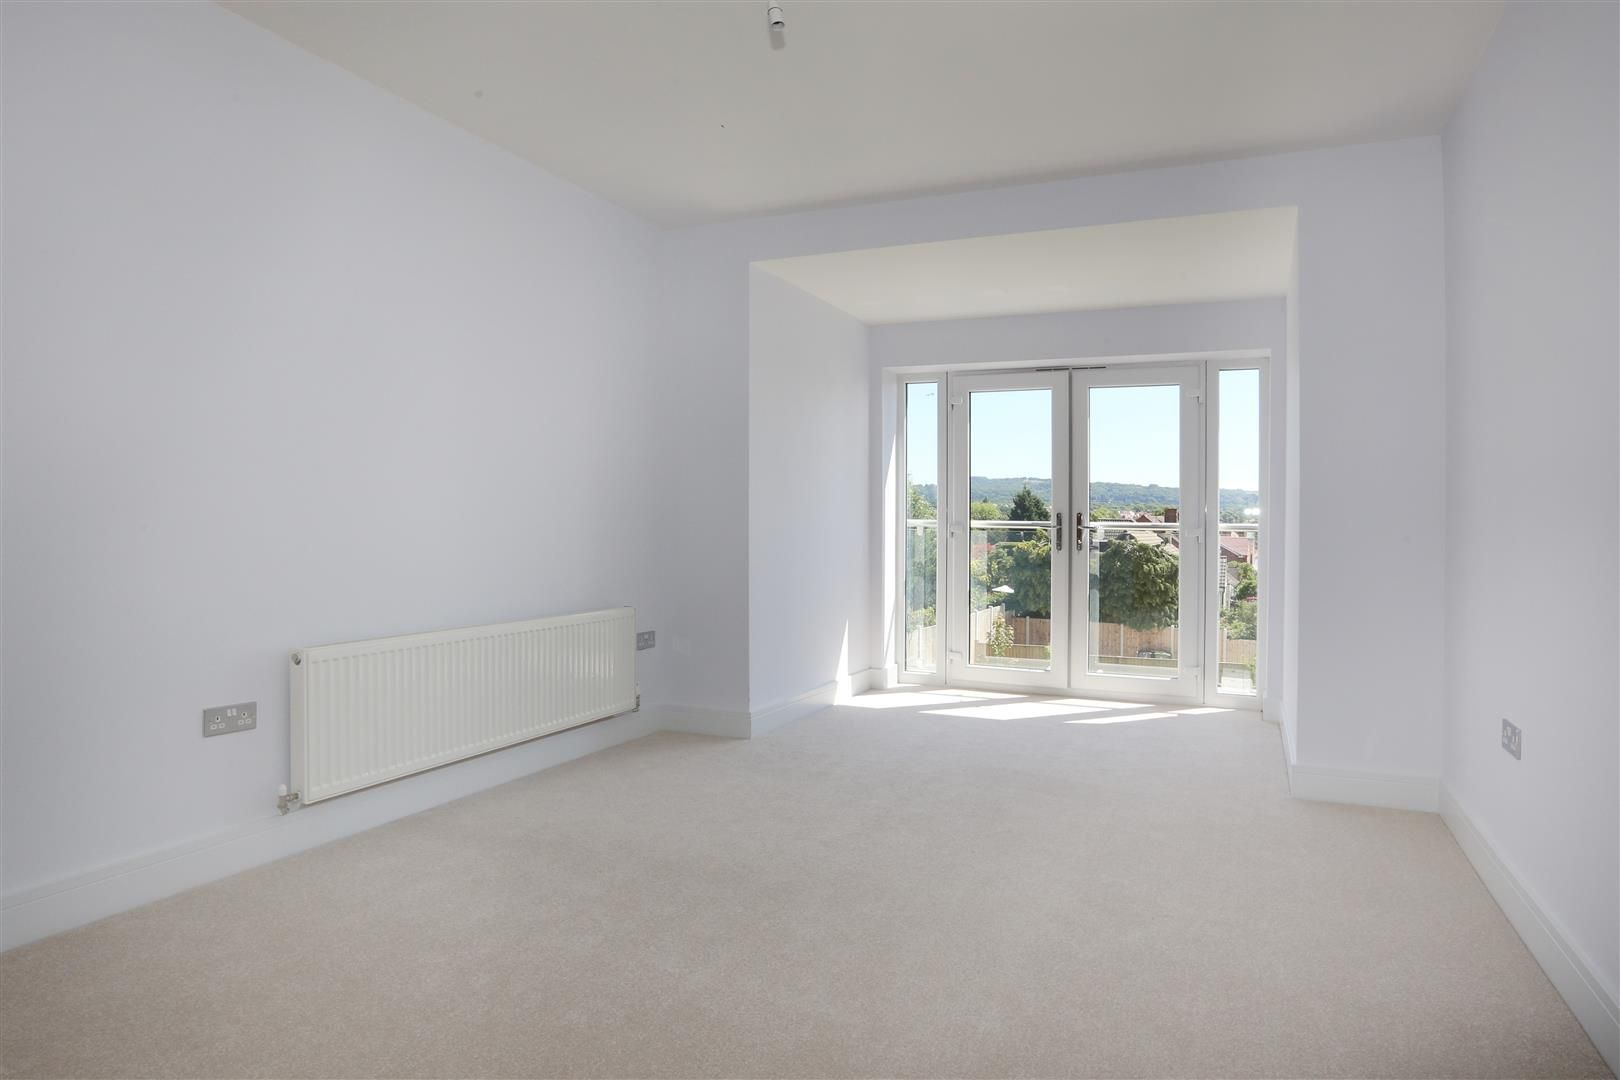 4 bed detached for sale in Hagley 11